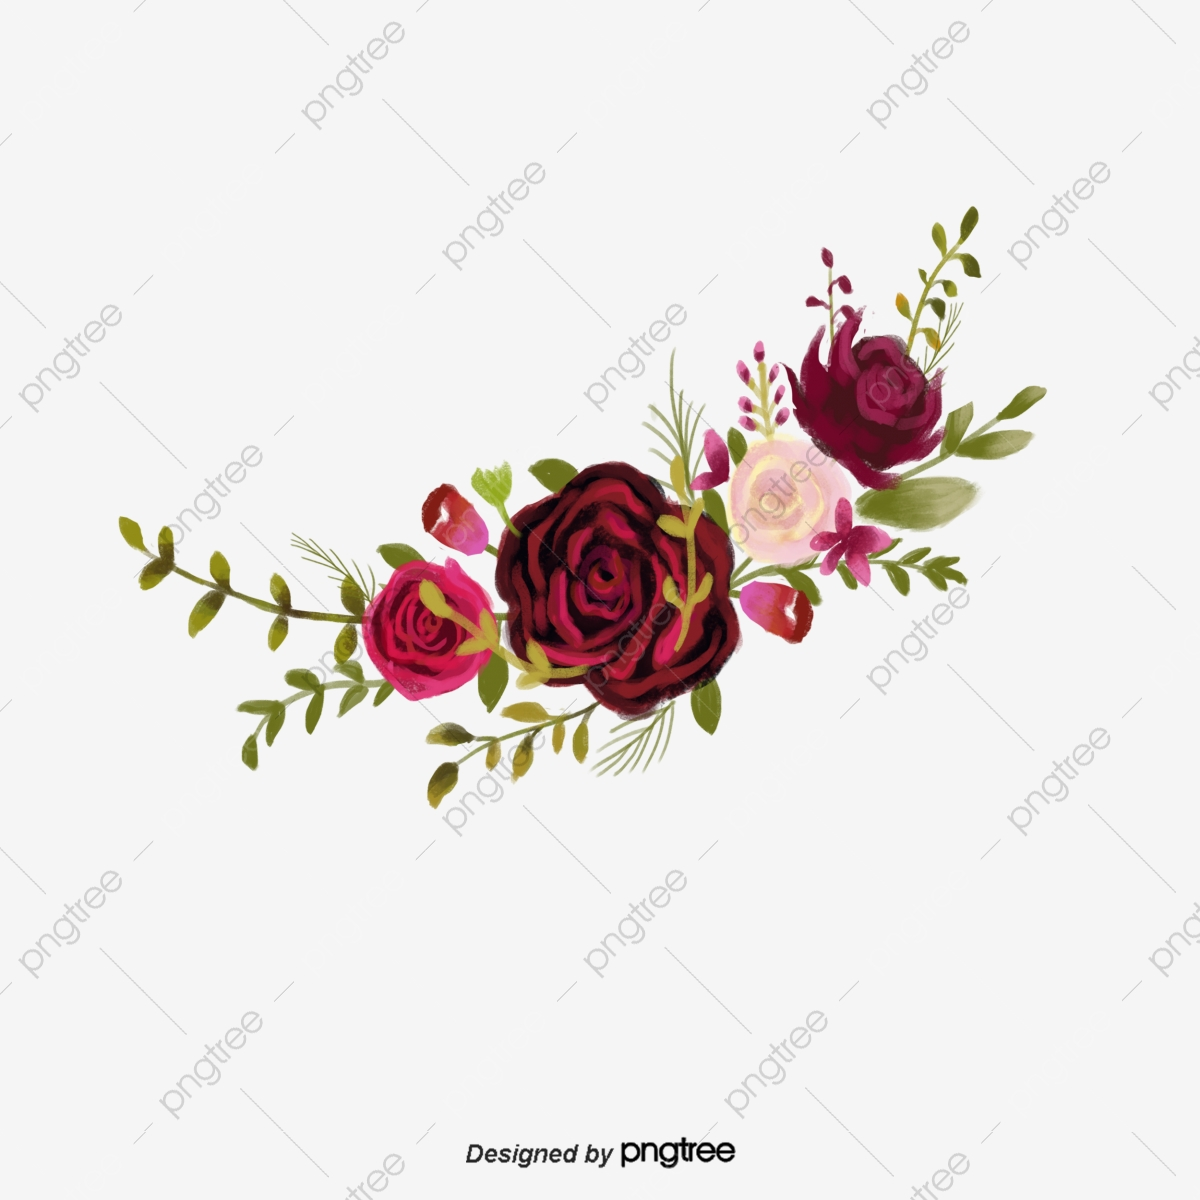 Dark Red Romantic Burgundy Flower Cluster Illustration Elements.